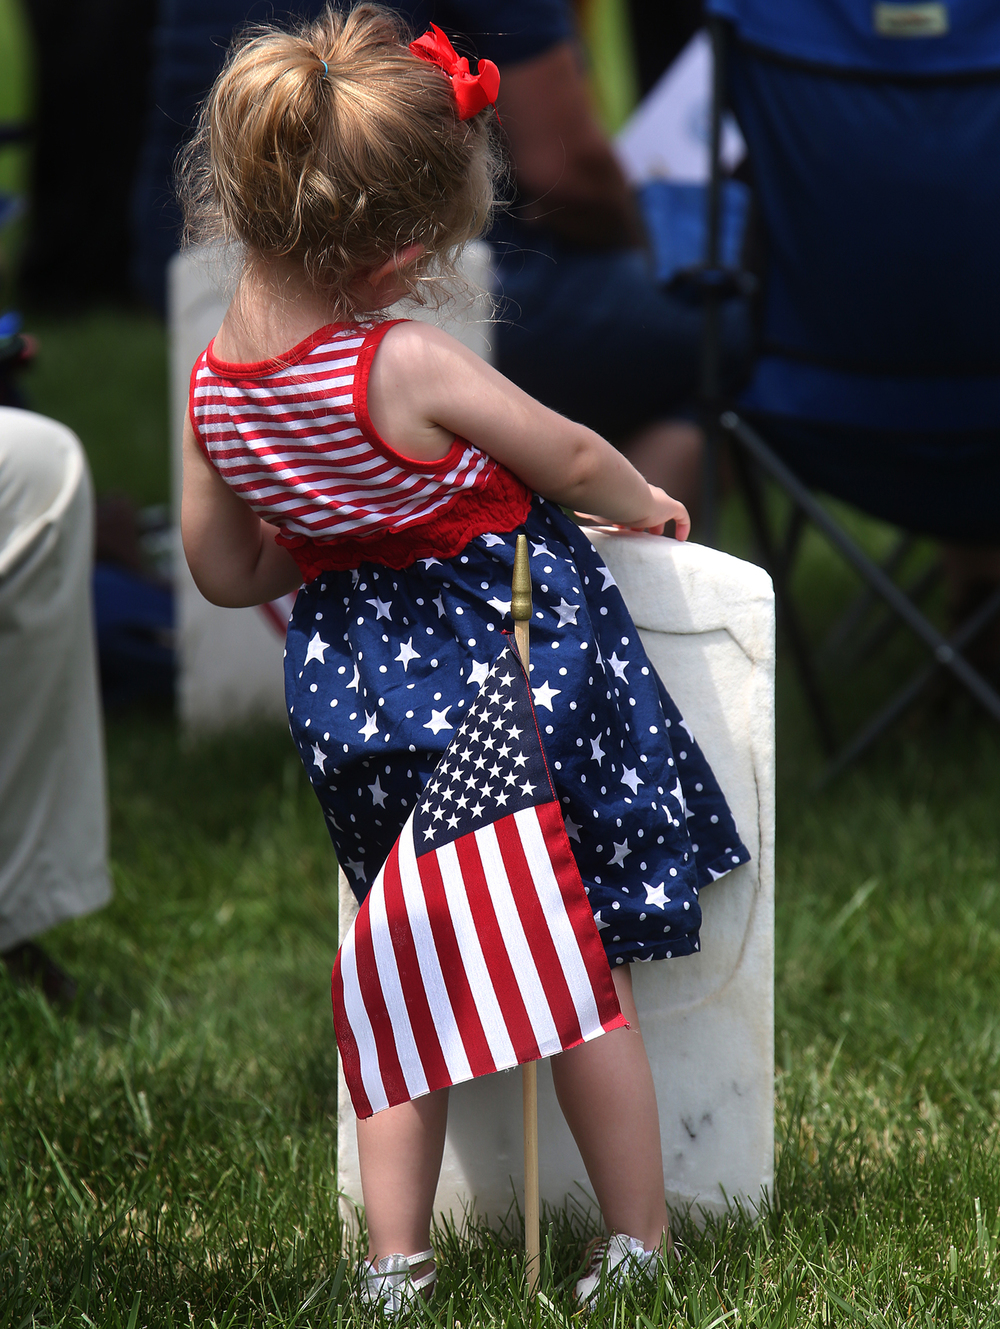 One youngster could be seen wearing a very patriotic dress fitting the occasion of Memorial Day as she balanced against a headstone during the ceremony. WWII veteran Vince Speranza of Auburn, who served in the 101st Airborne Division, was the keynote speaker at the annual Memorial Day Ceremony held at Camp Butler National Cemetery in Springfield on Monday afternoon, May 30, 2016. David Spencer/The State Journal-Register